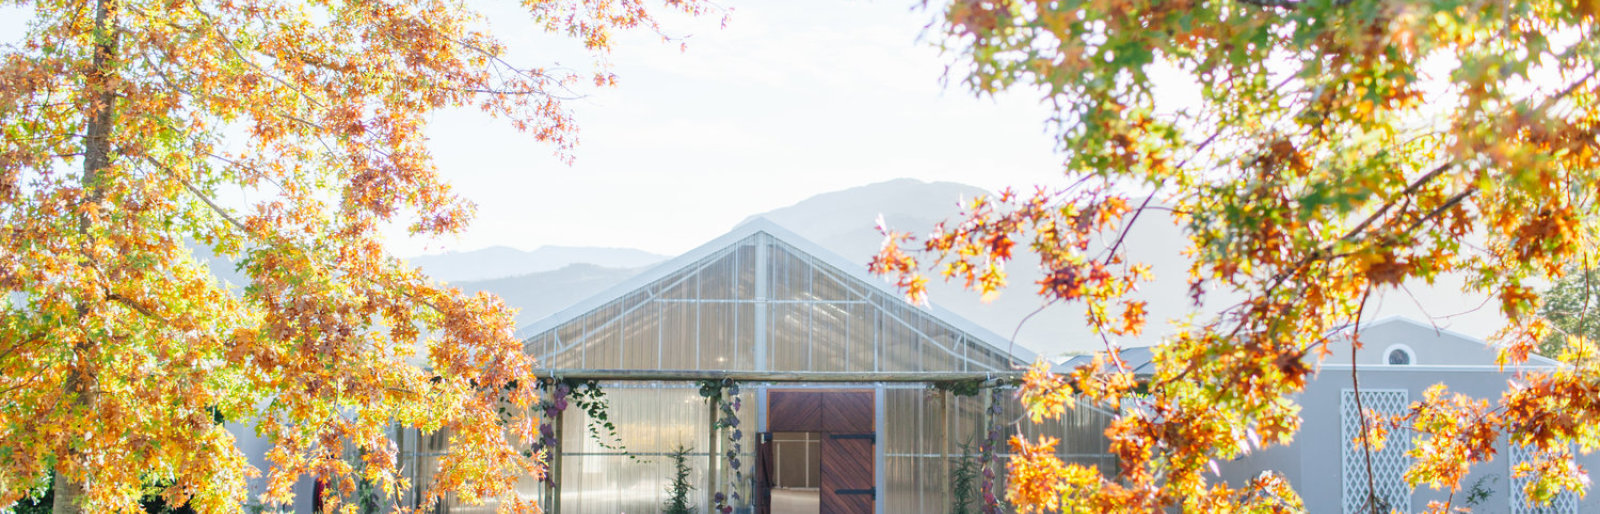 The Orchid House: Môreson's New Exclusive Wedding Venue